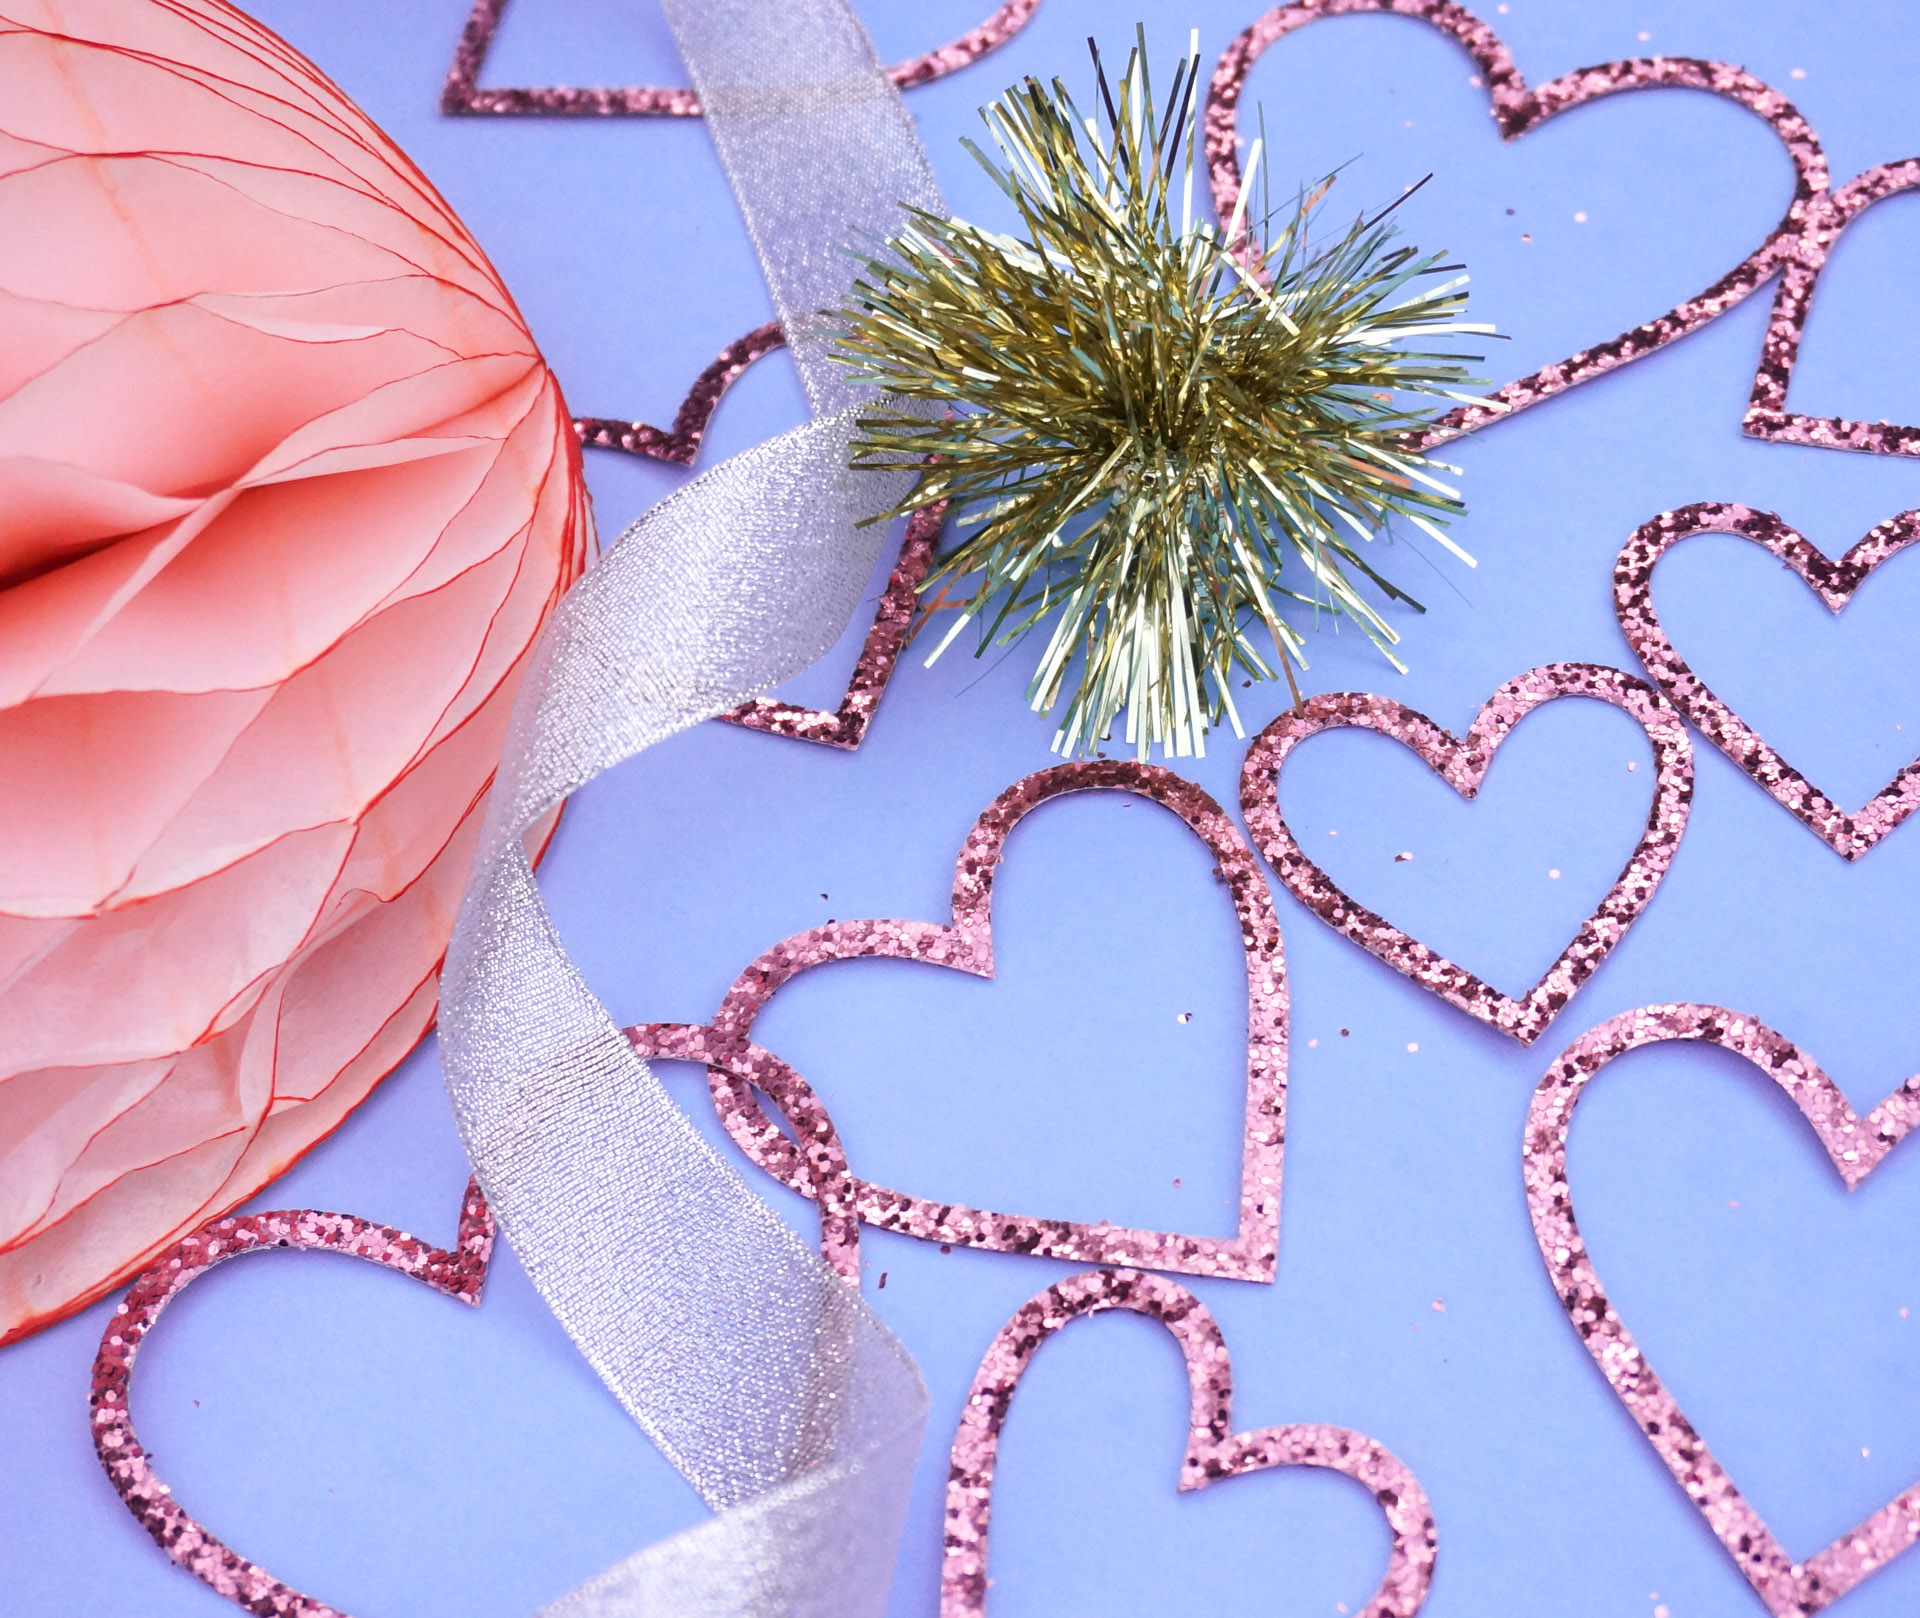 Tinsel adds a sparkling touch to winter and Valentine's Day decor